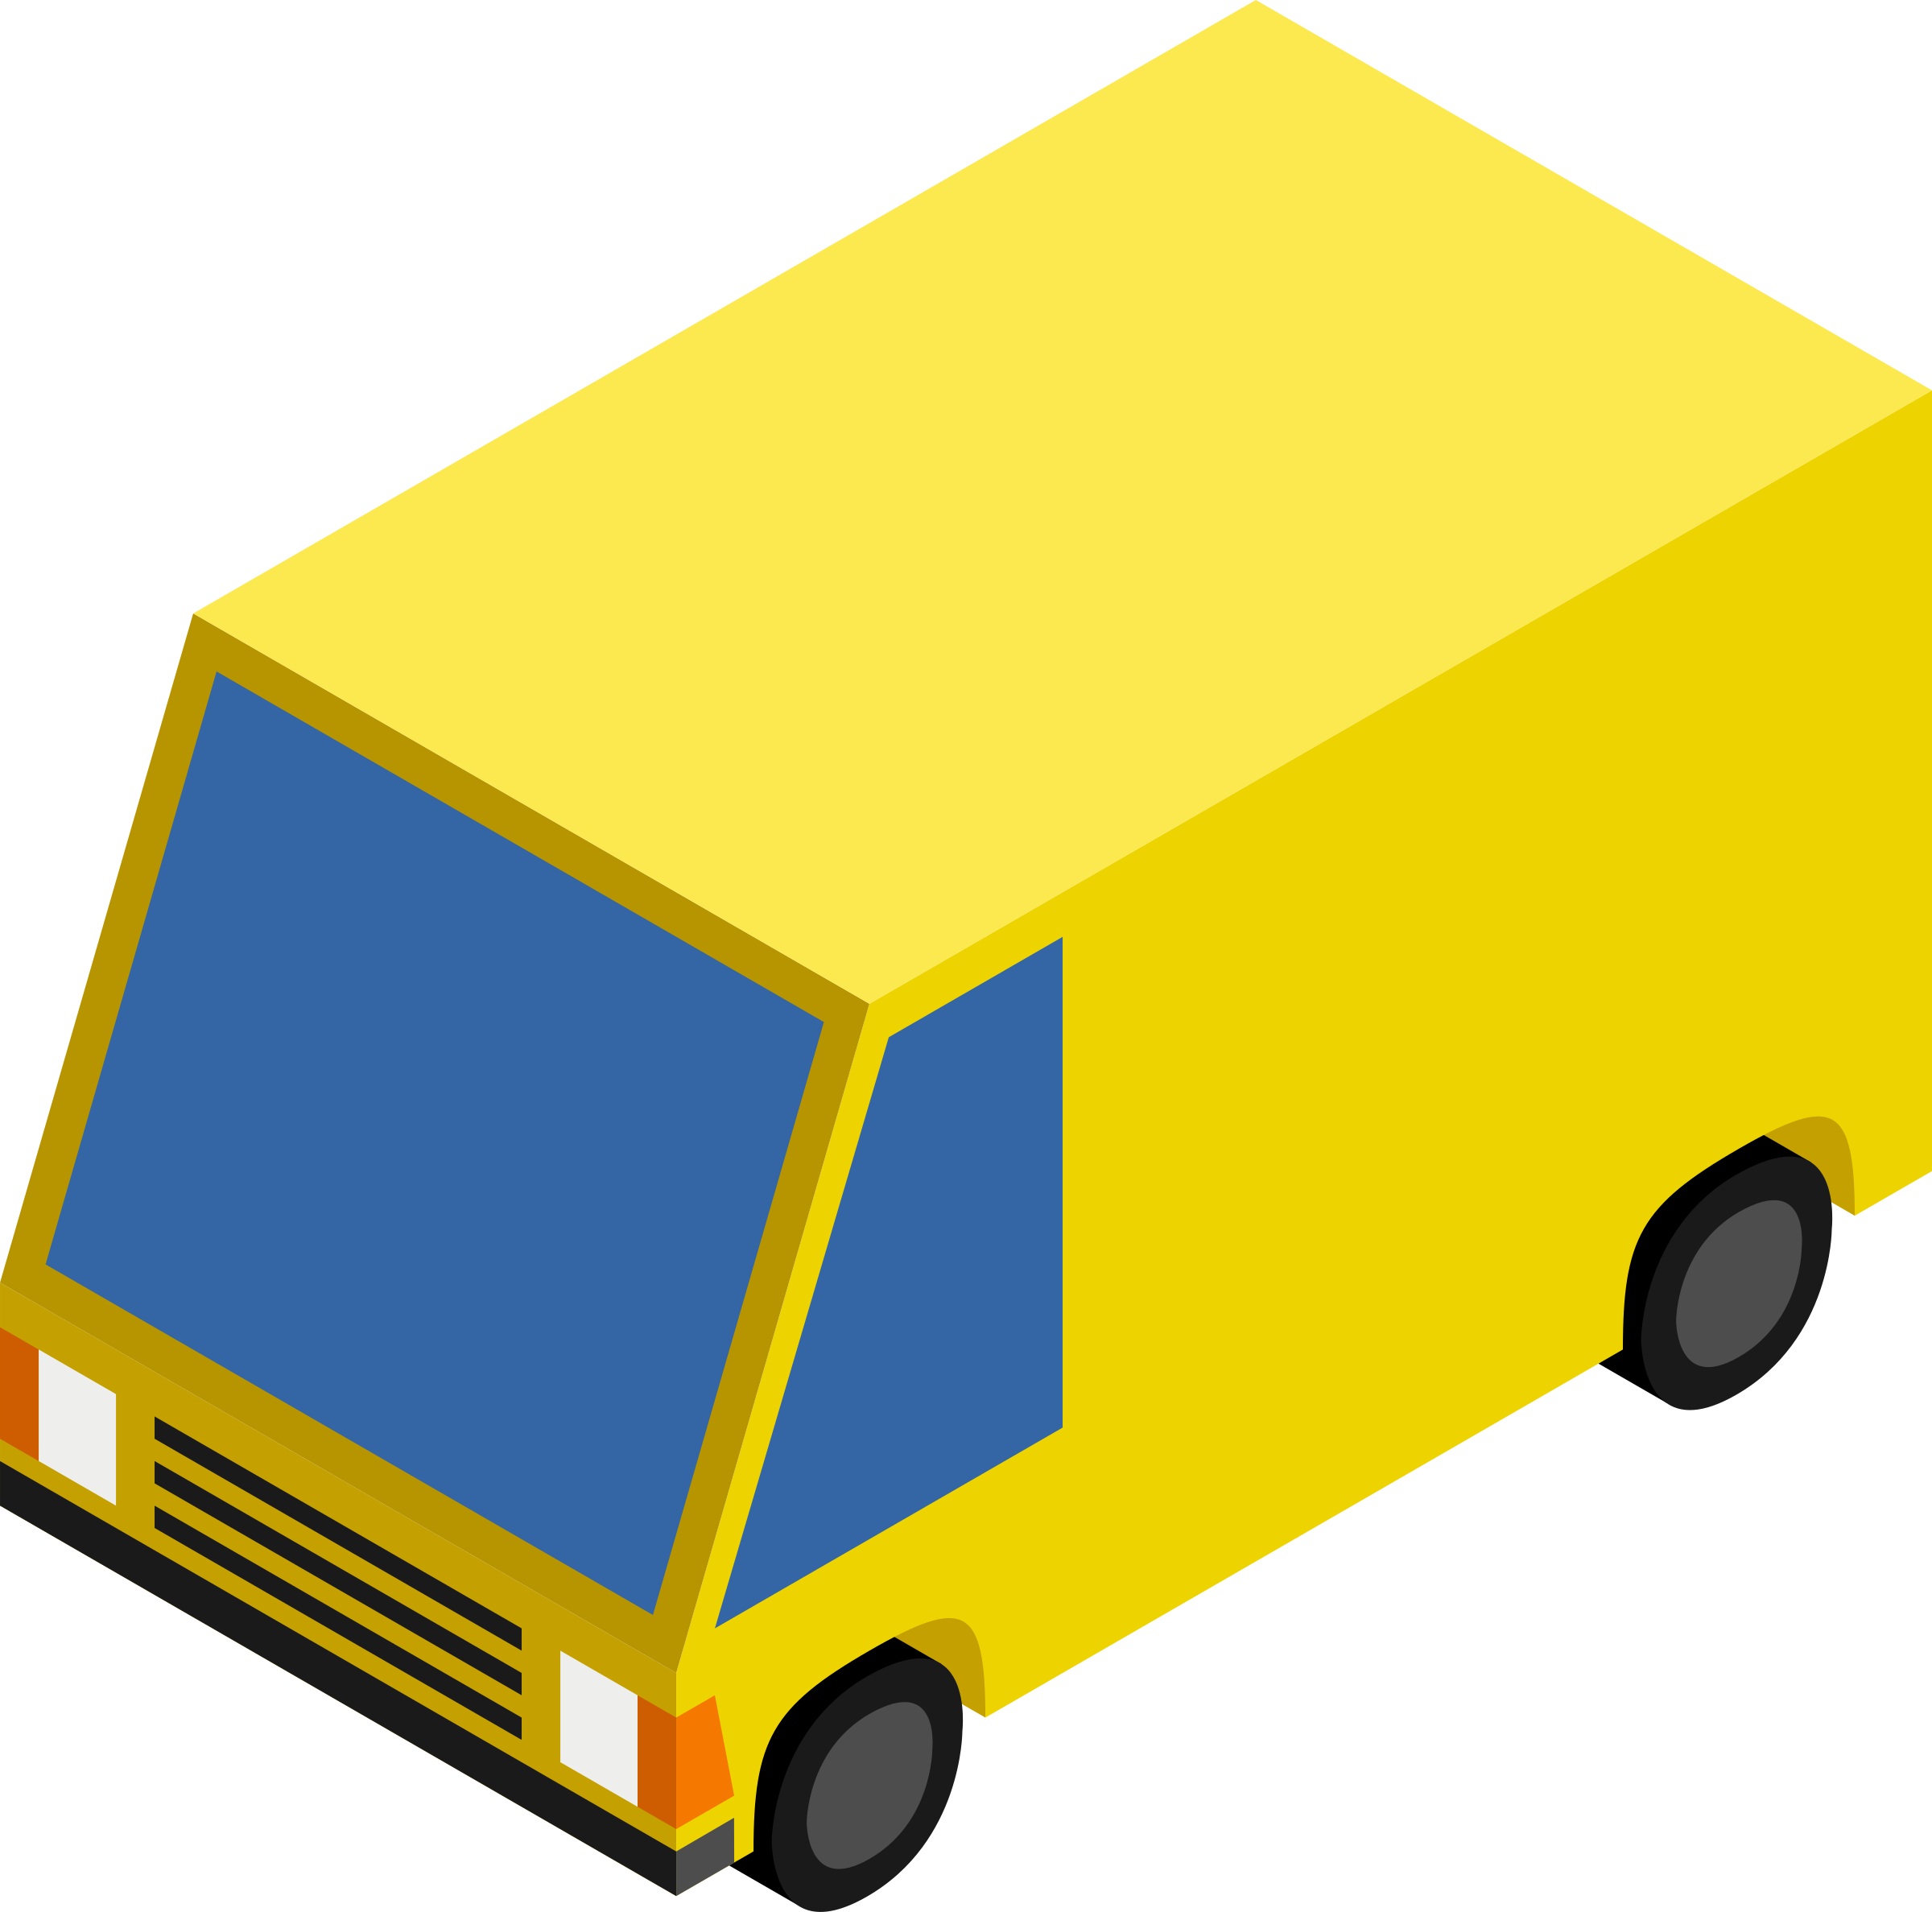 CM Isometric Yellow Van by depizol